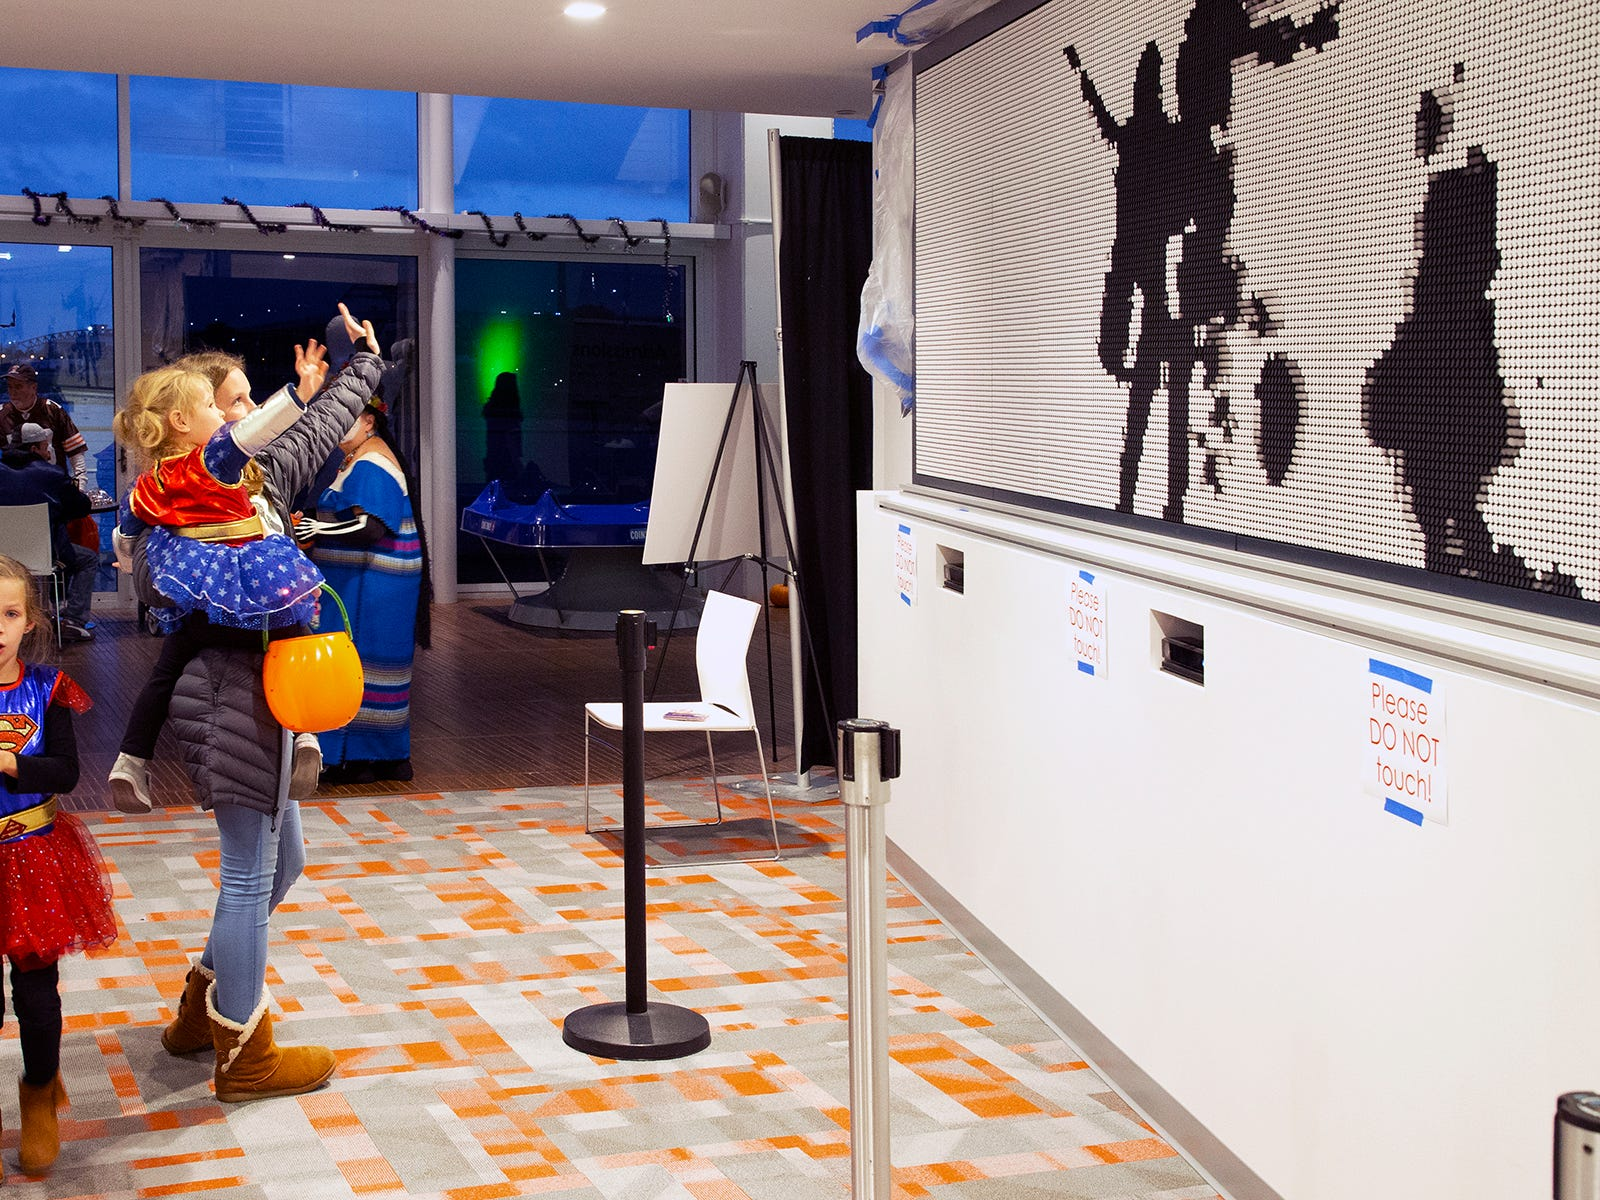 Discovery World's new exhibit teaches kids about energy. While letting them burn it off.